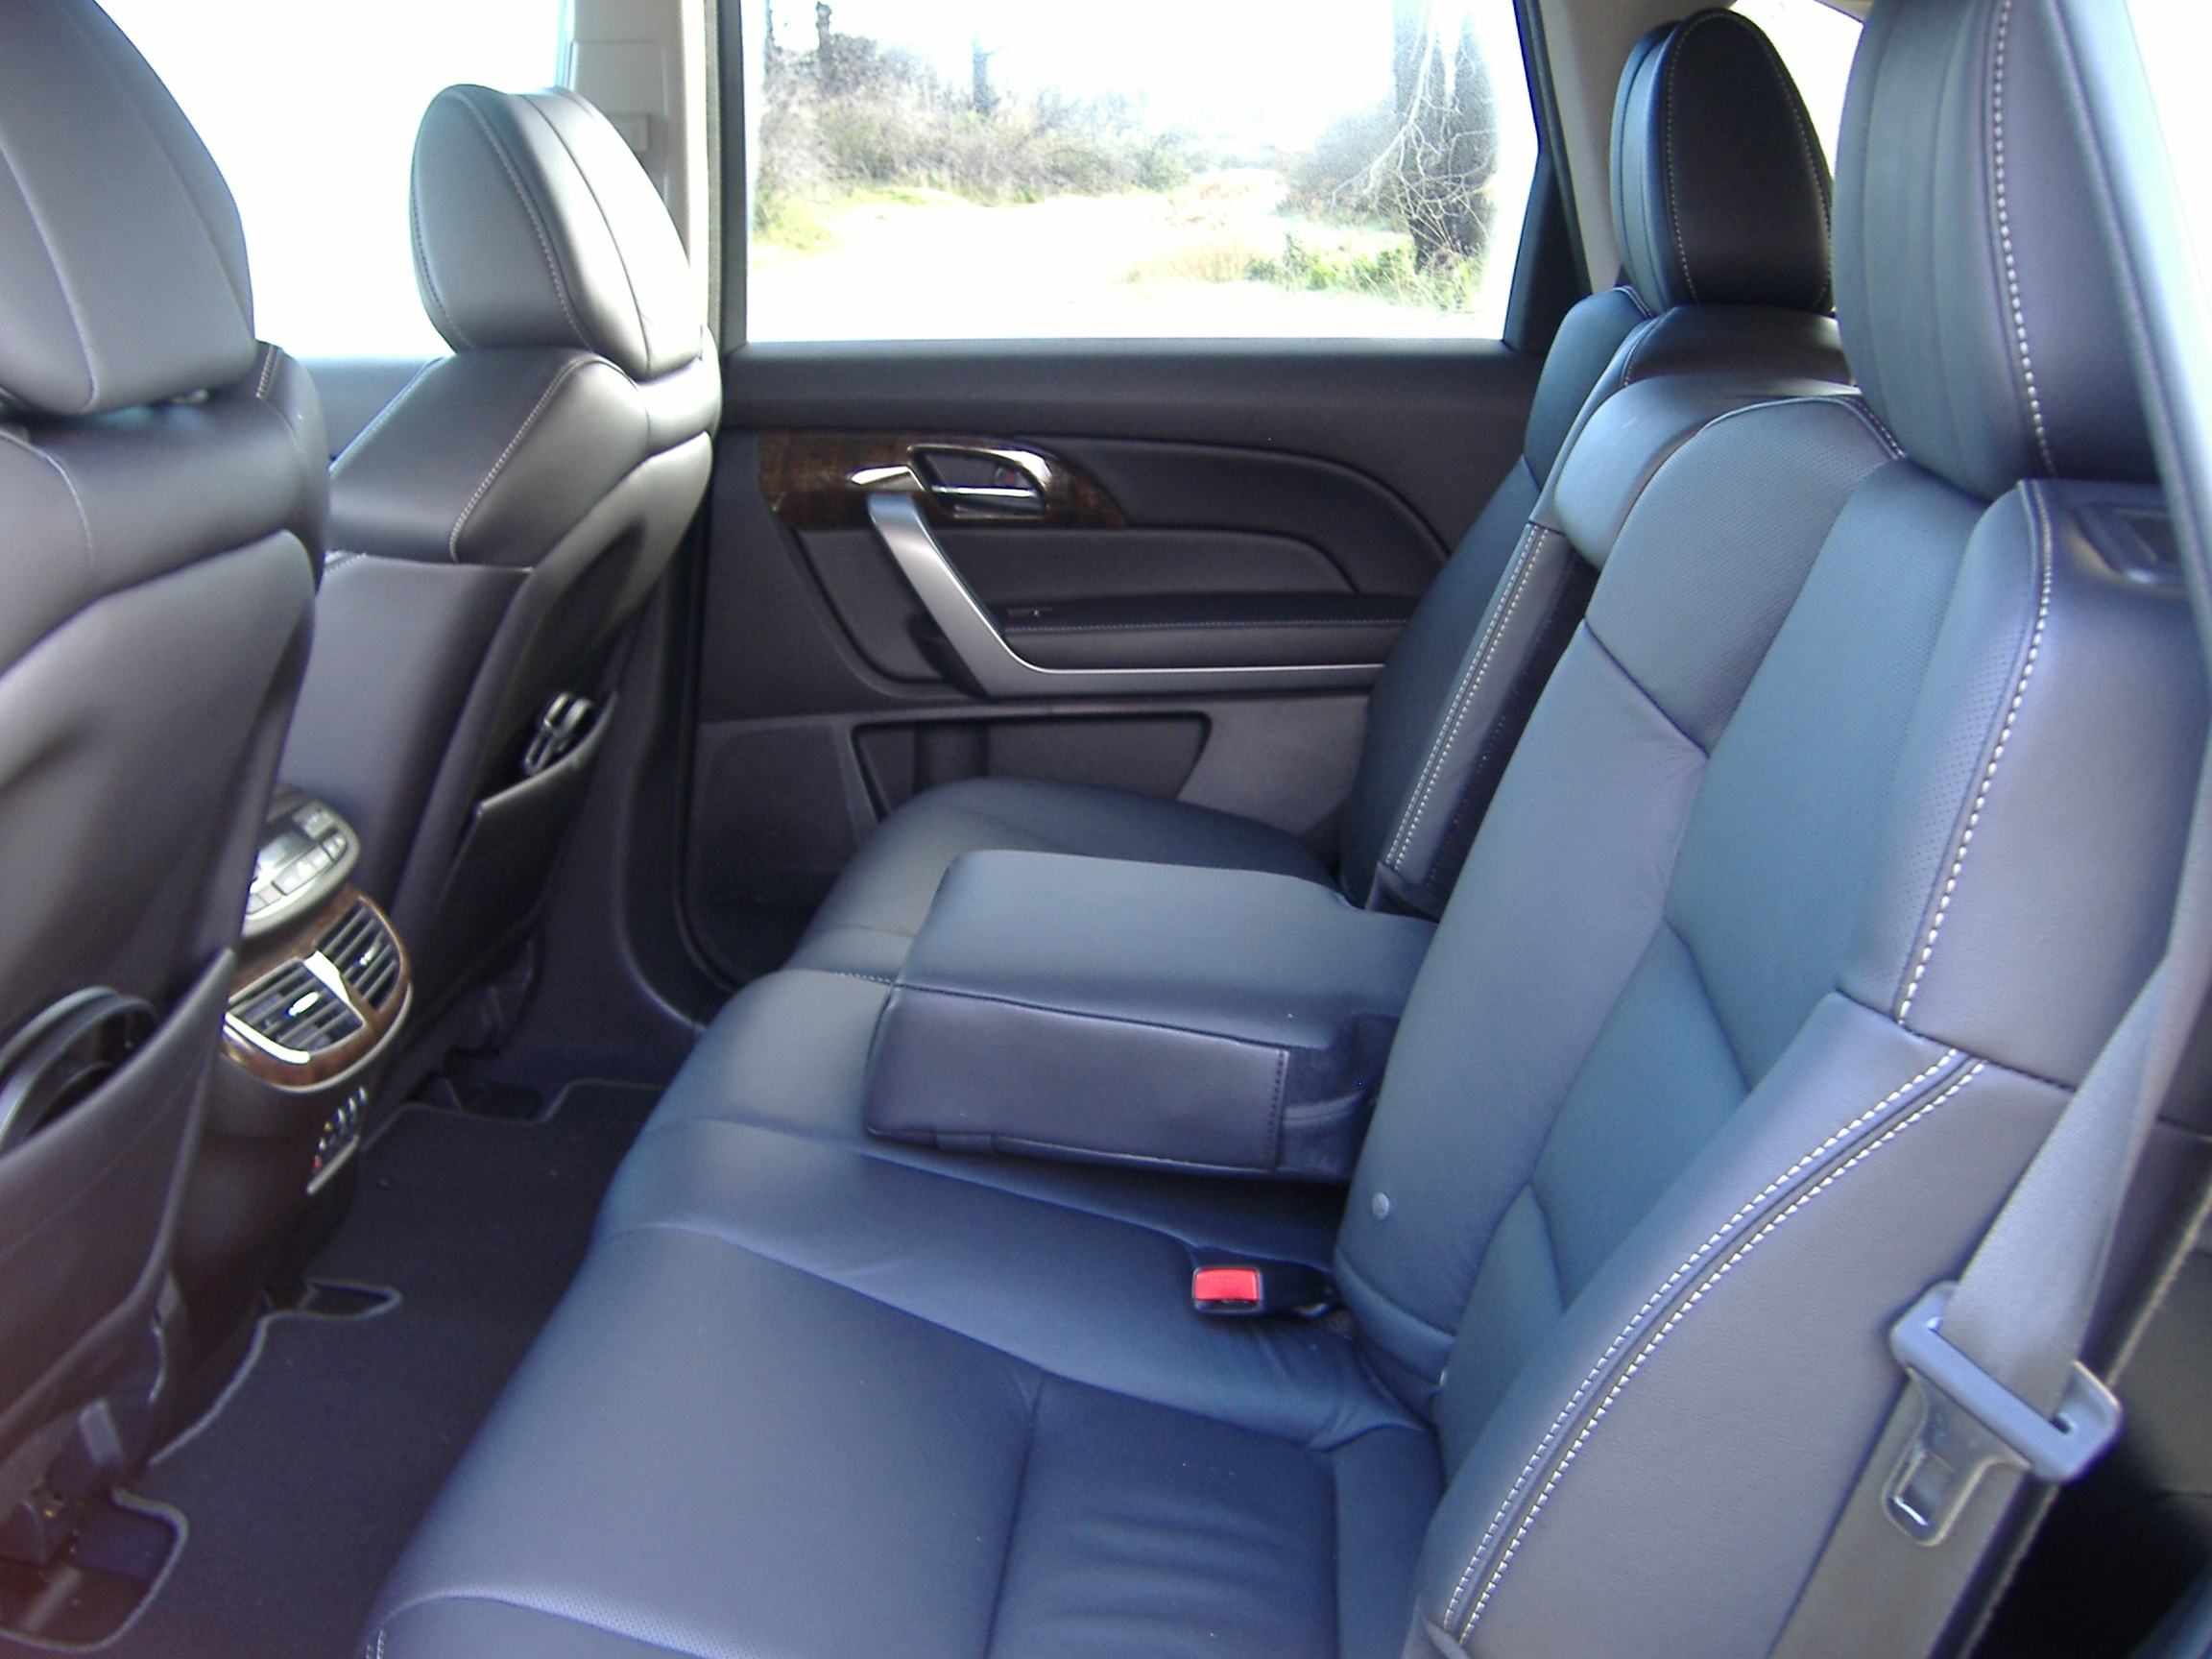 2010 acura mdx review. Black Bedroom Furniture Sets. Home Design Ideas